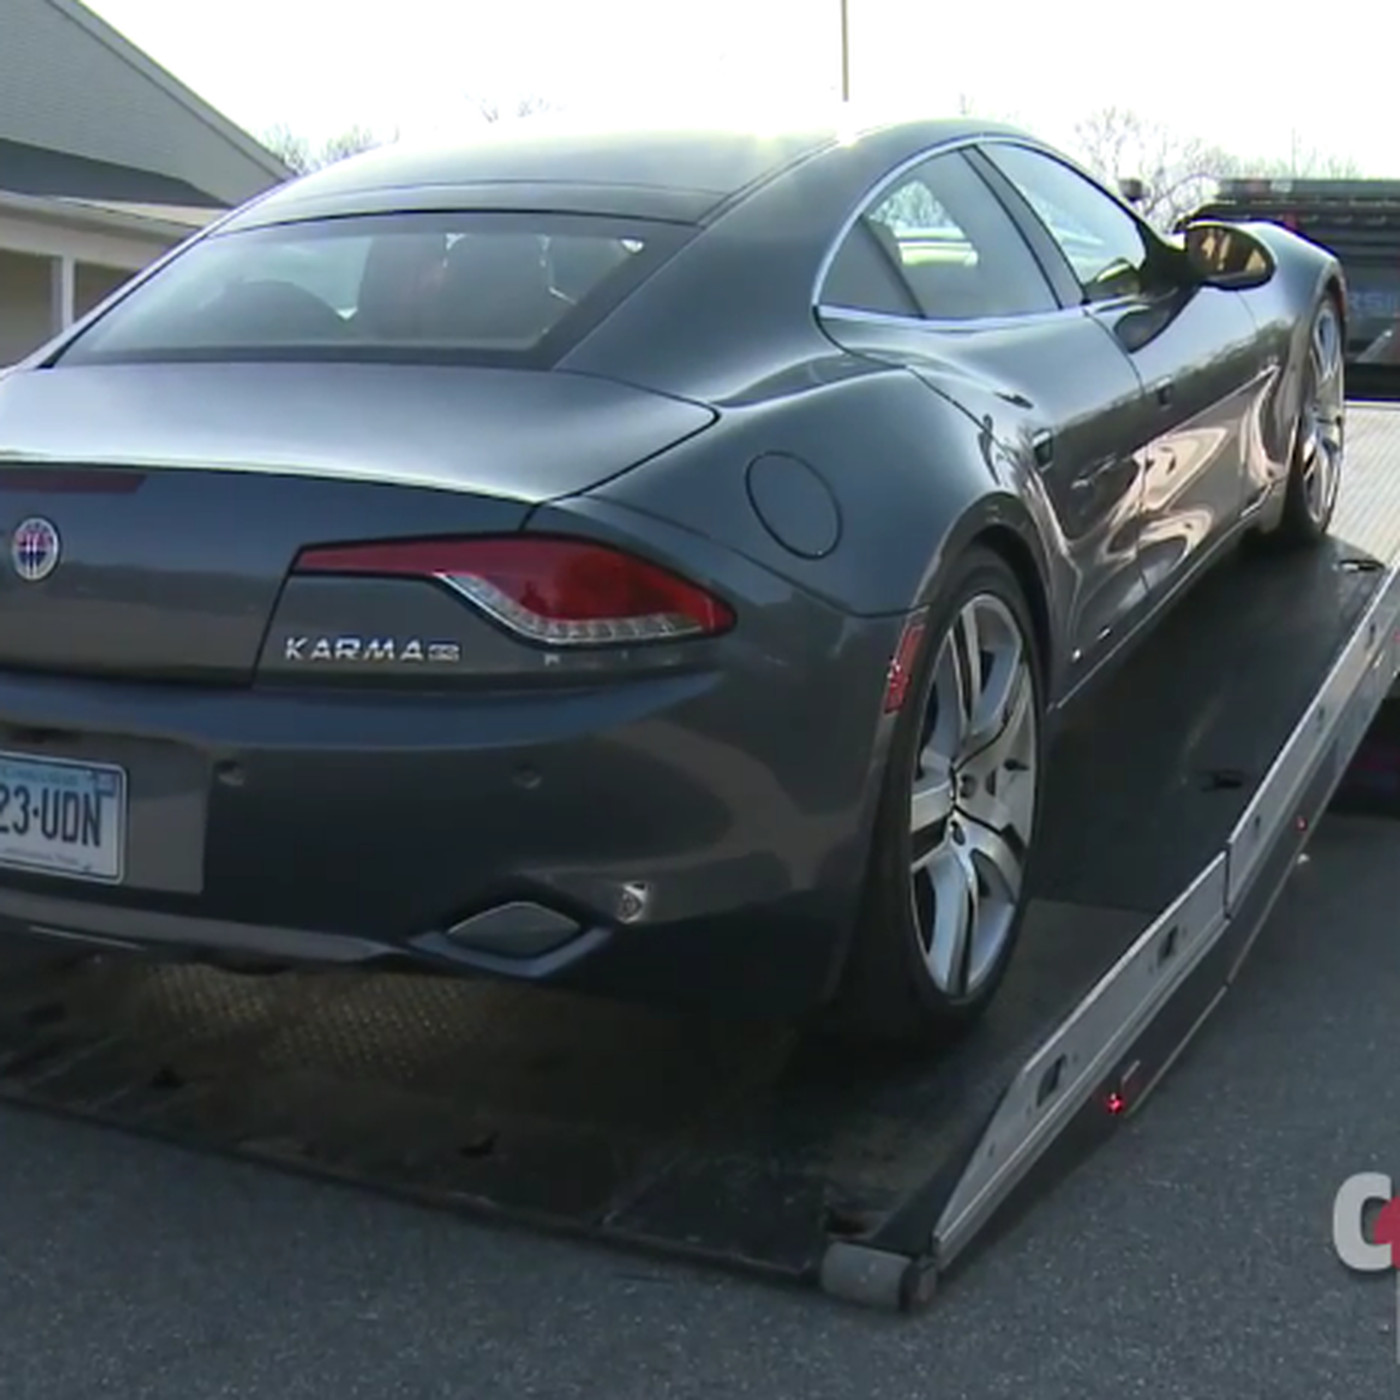 Fisker Karma Hybrid Car Breaks Down During Consumer Reports Testing